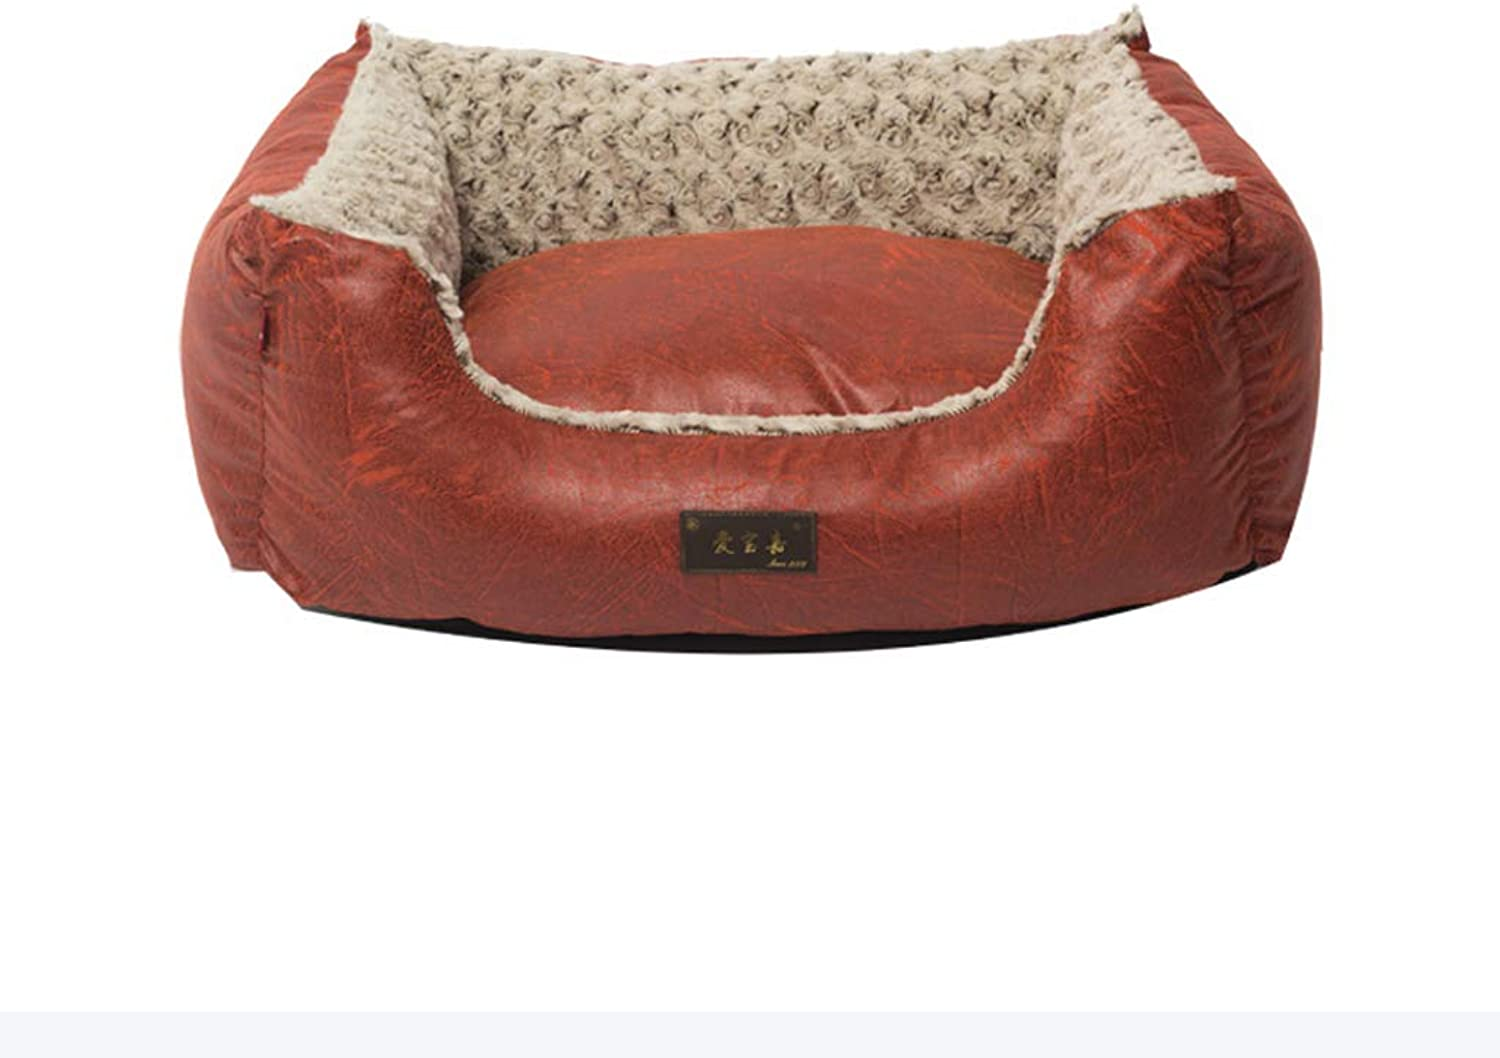 HQSB Pet bed Soft Luxurious And Comfortable Square Cat Dog Bed With Anti Slip Base (color   RED, Size   Xl)